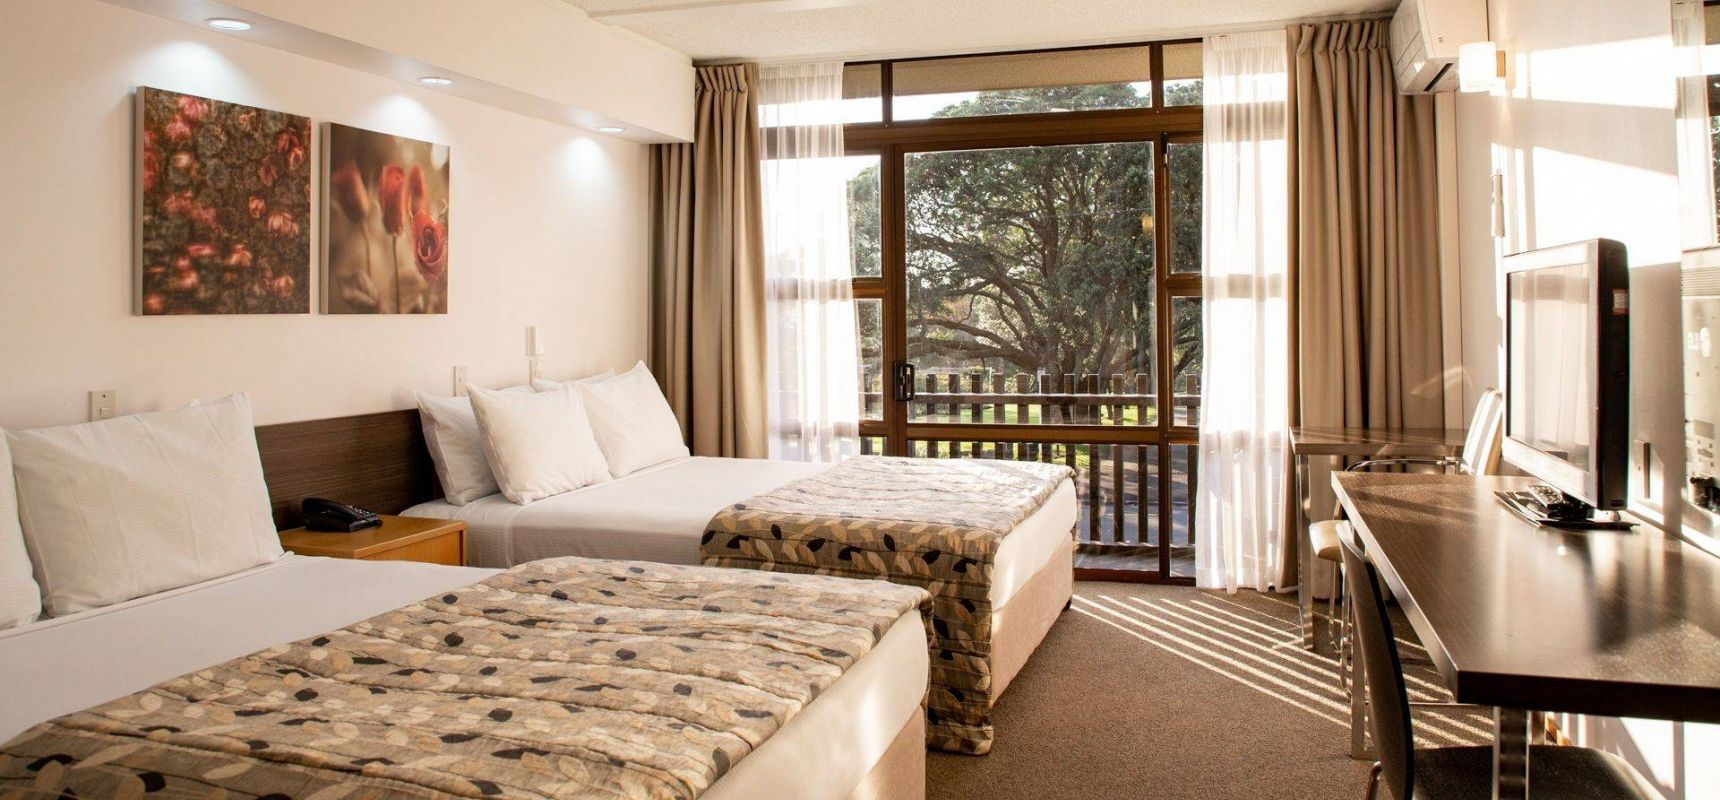 Superior Twin Queen Room With Balcony